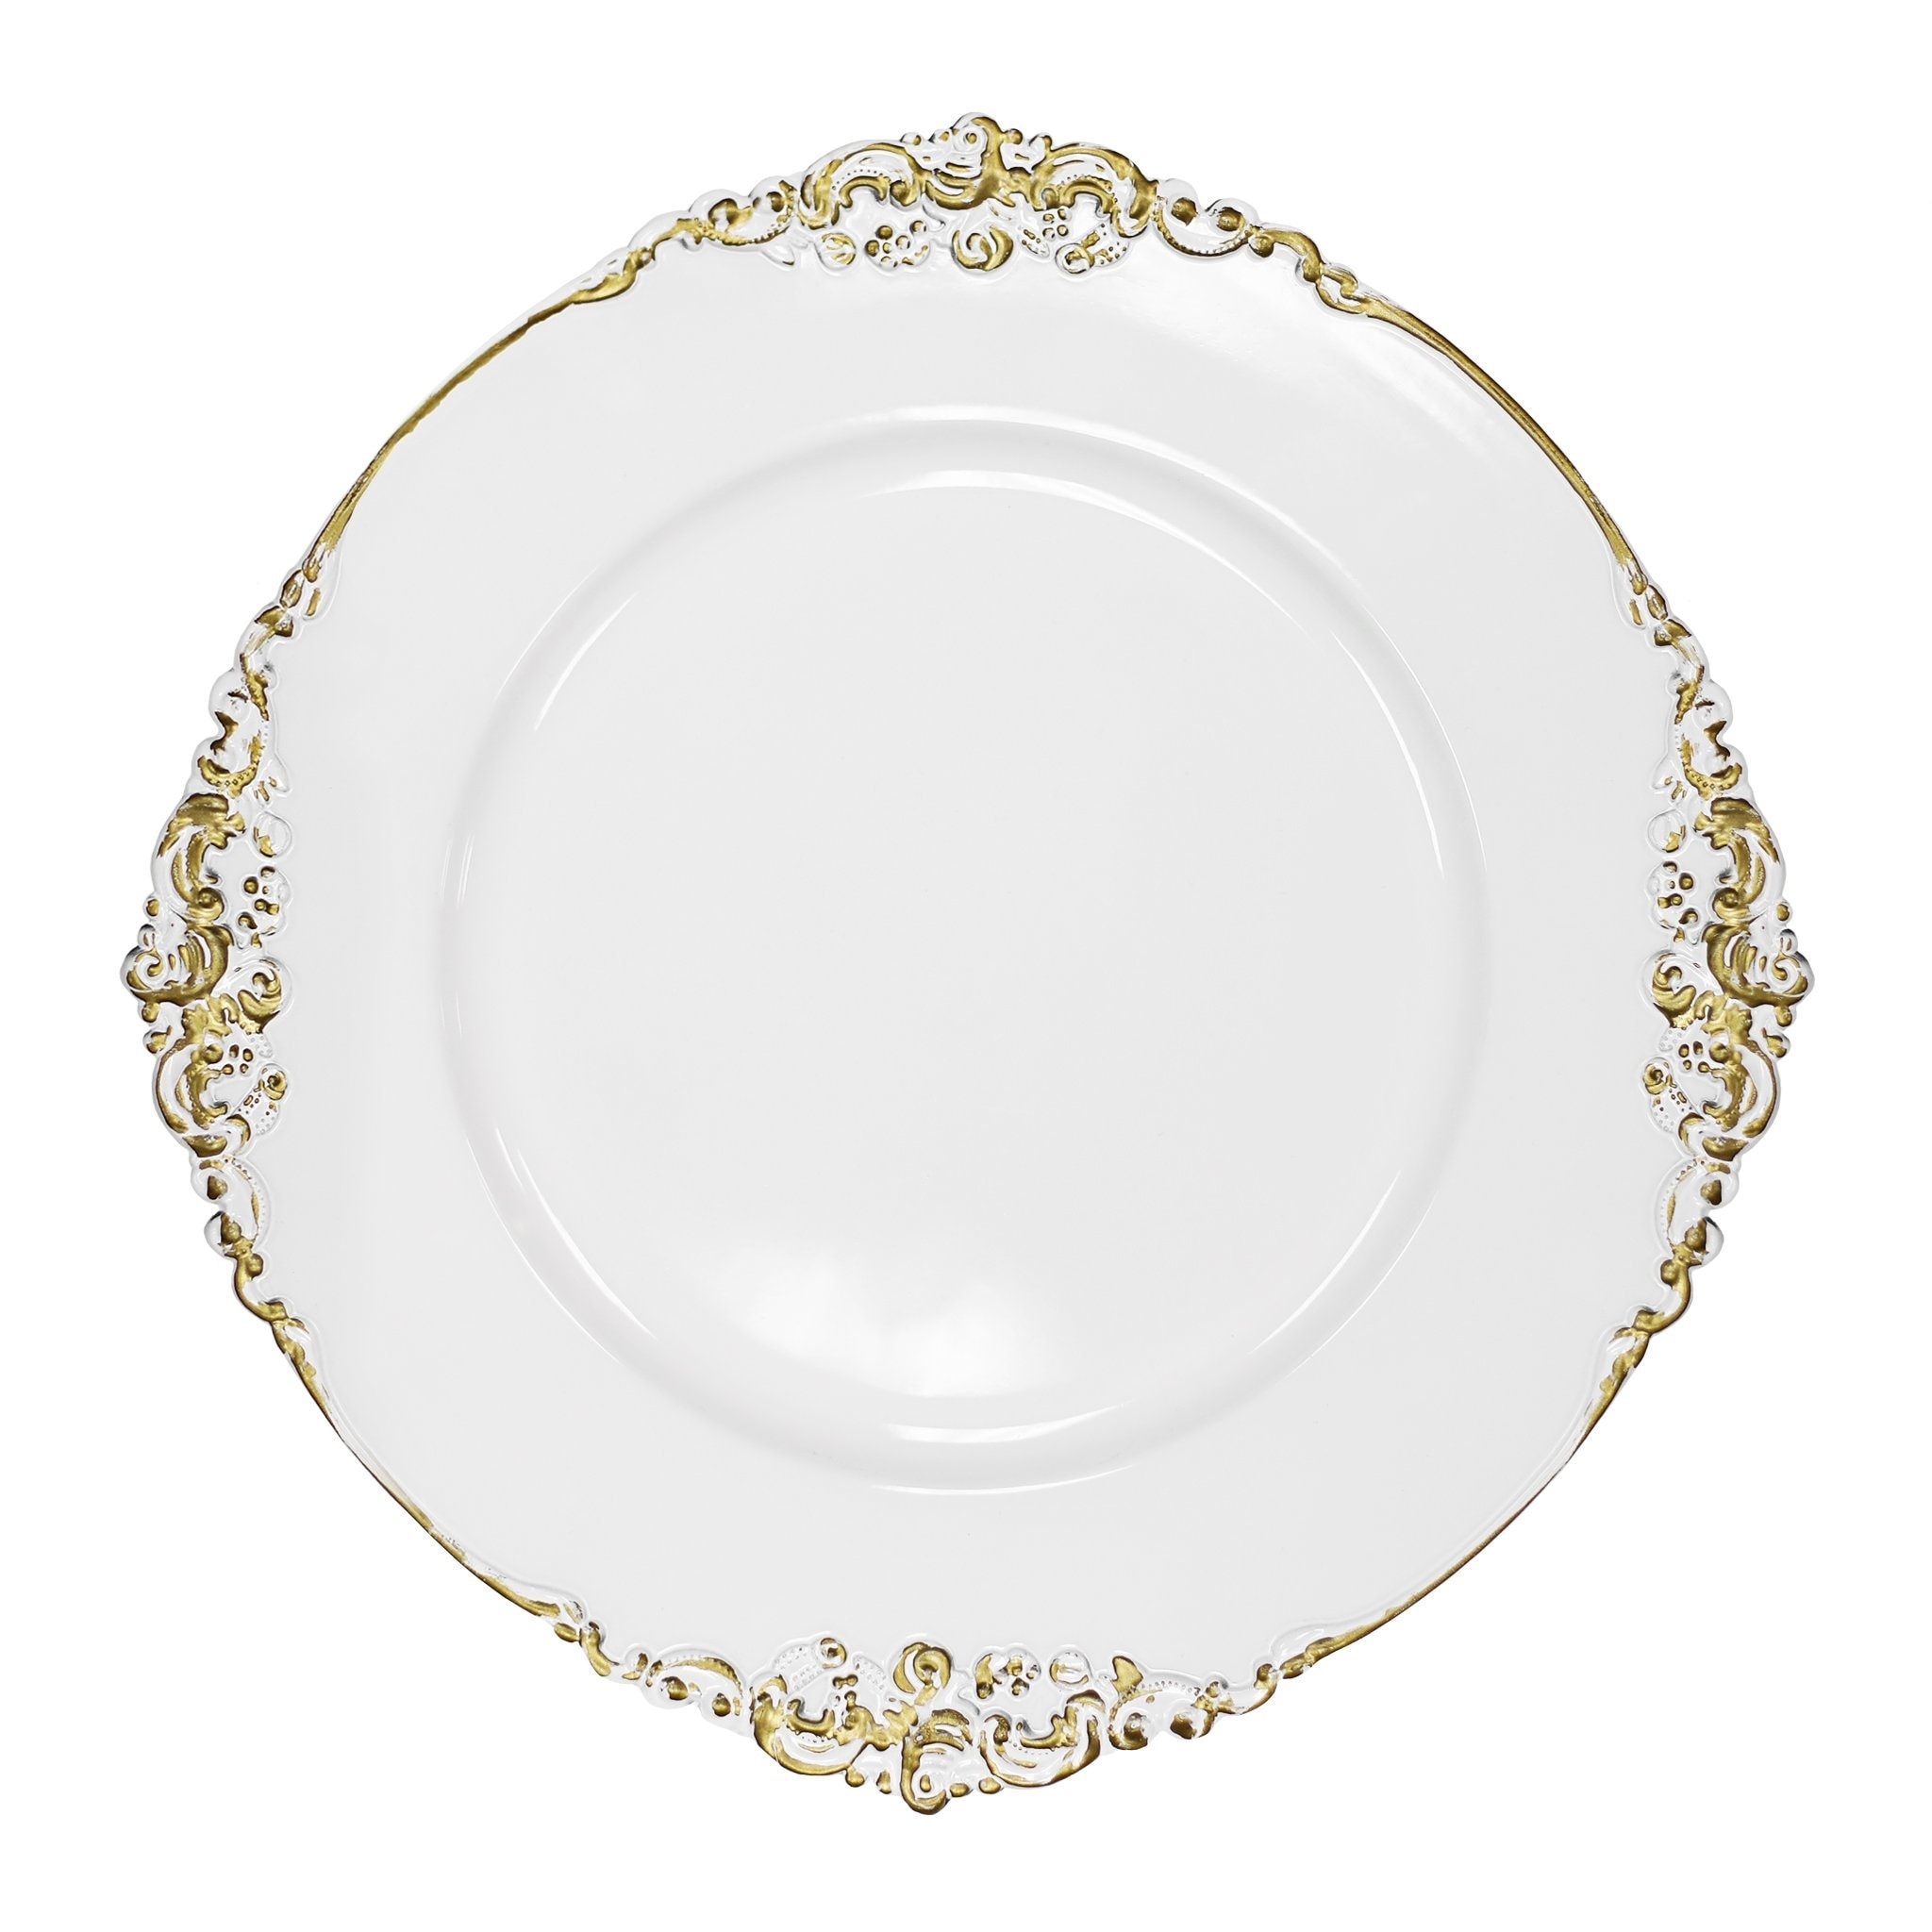 1 Piece Vintage Round Charger Plate White Gold Trimmed White Gold Trimmed Overstock 31681729